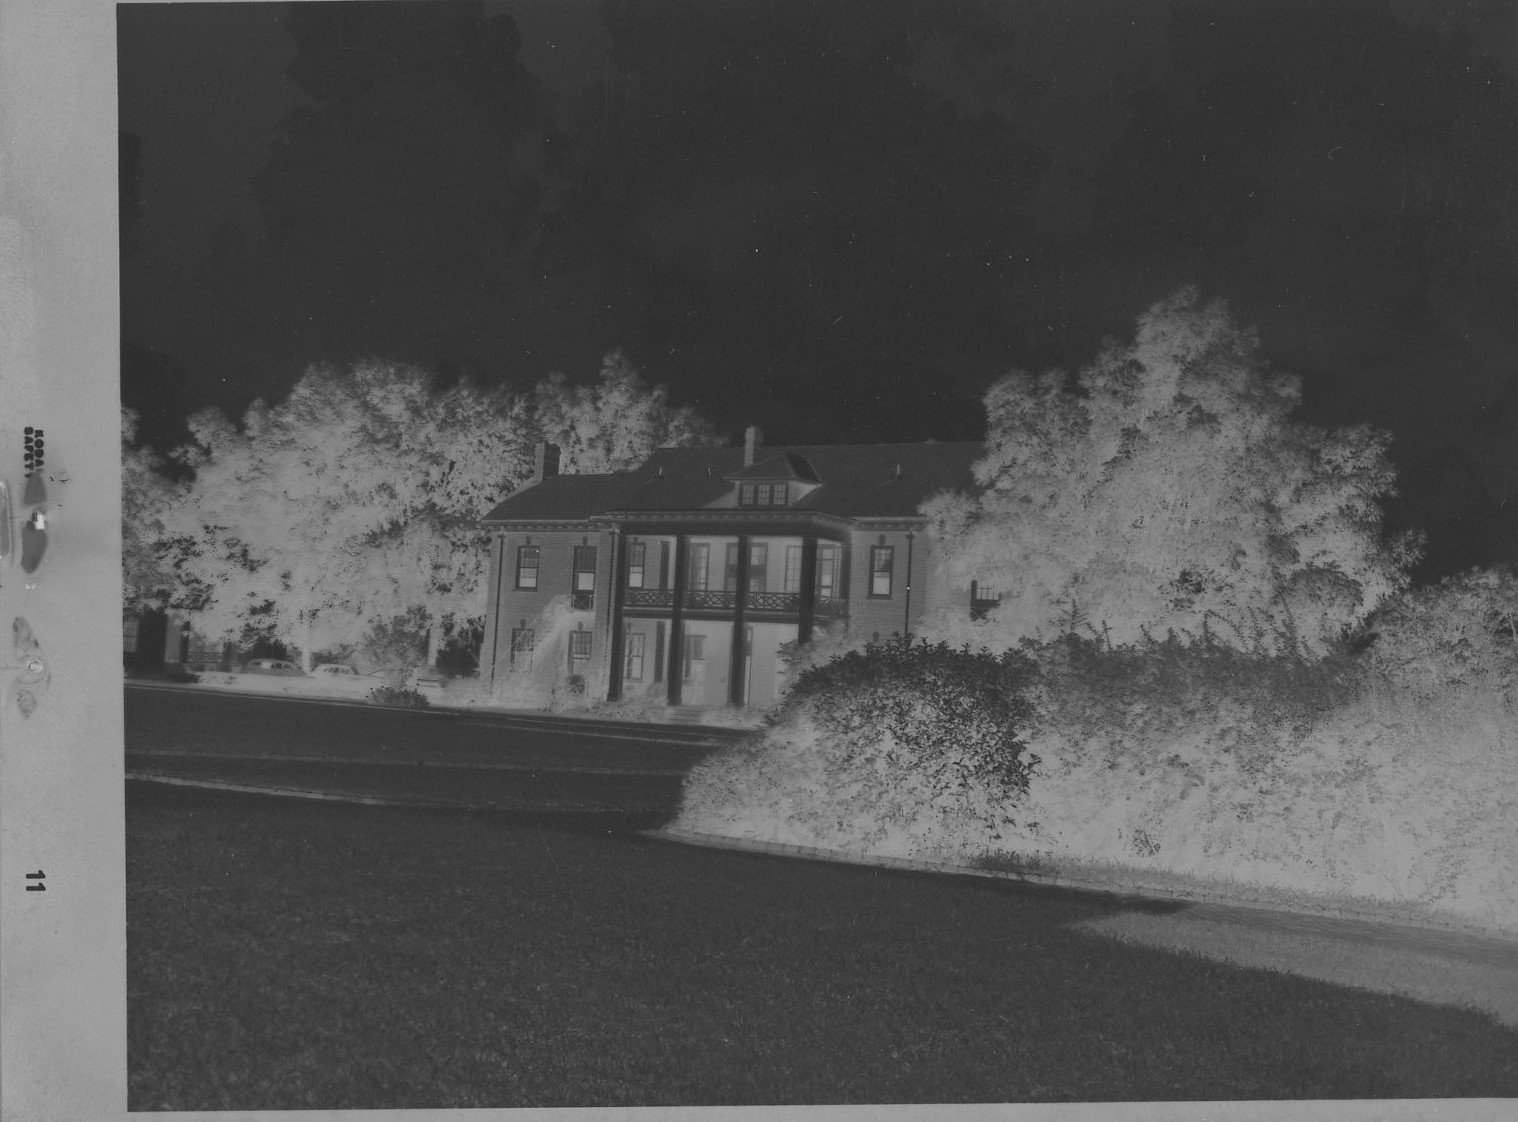 A photo negative of Peterson Hall